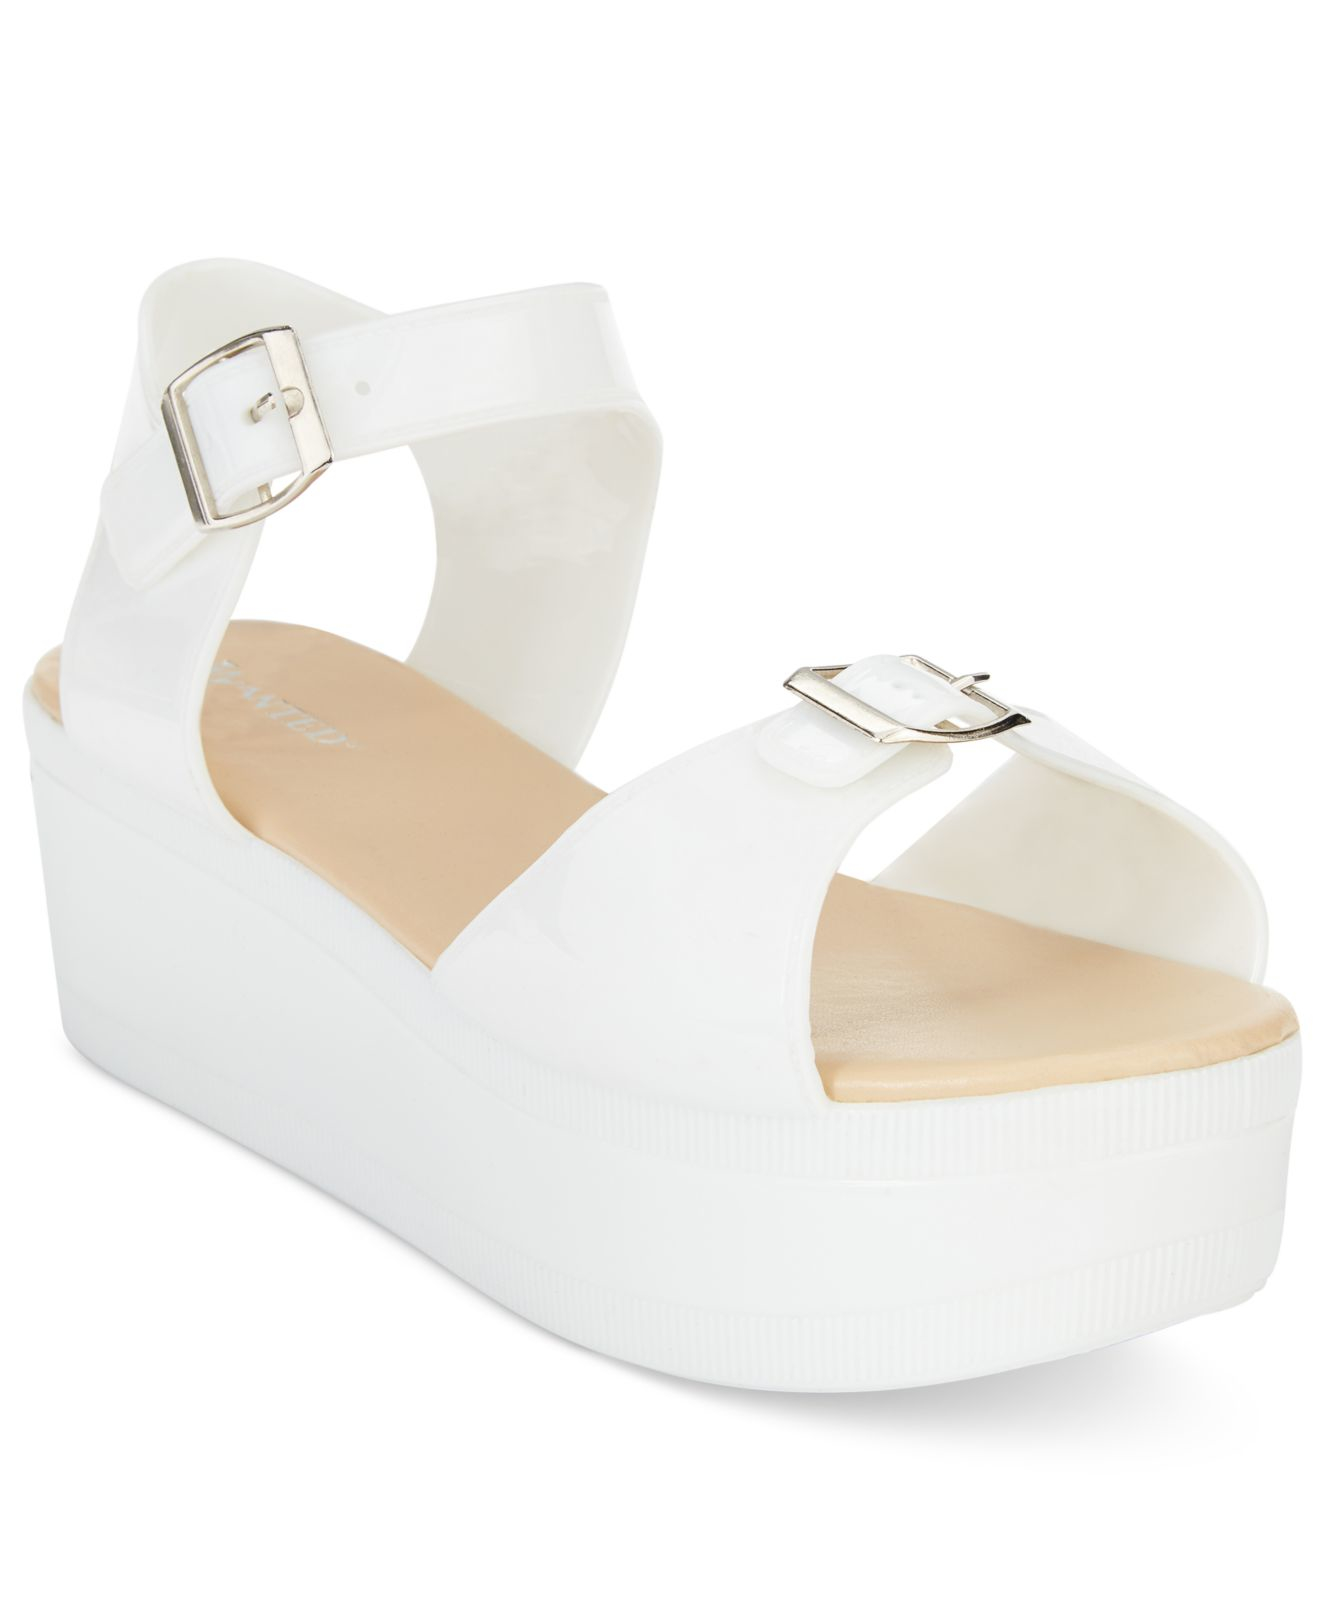 4a6bf25f3c0 Lyst - Wanted Gumdrop Flatform Jelly Sandals in White